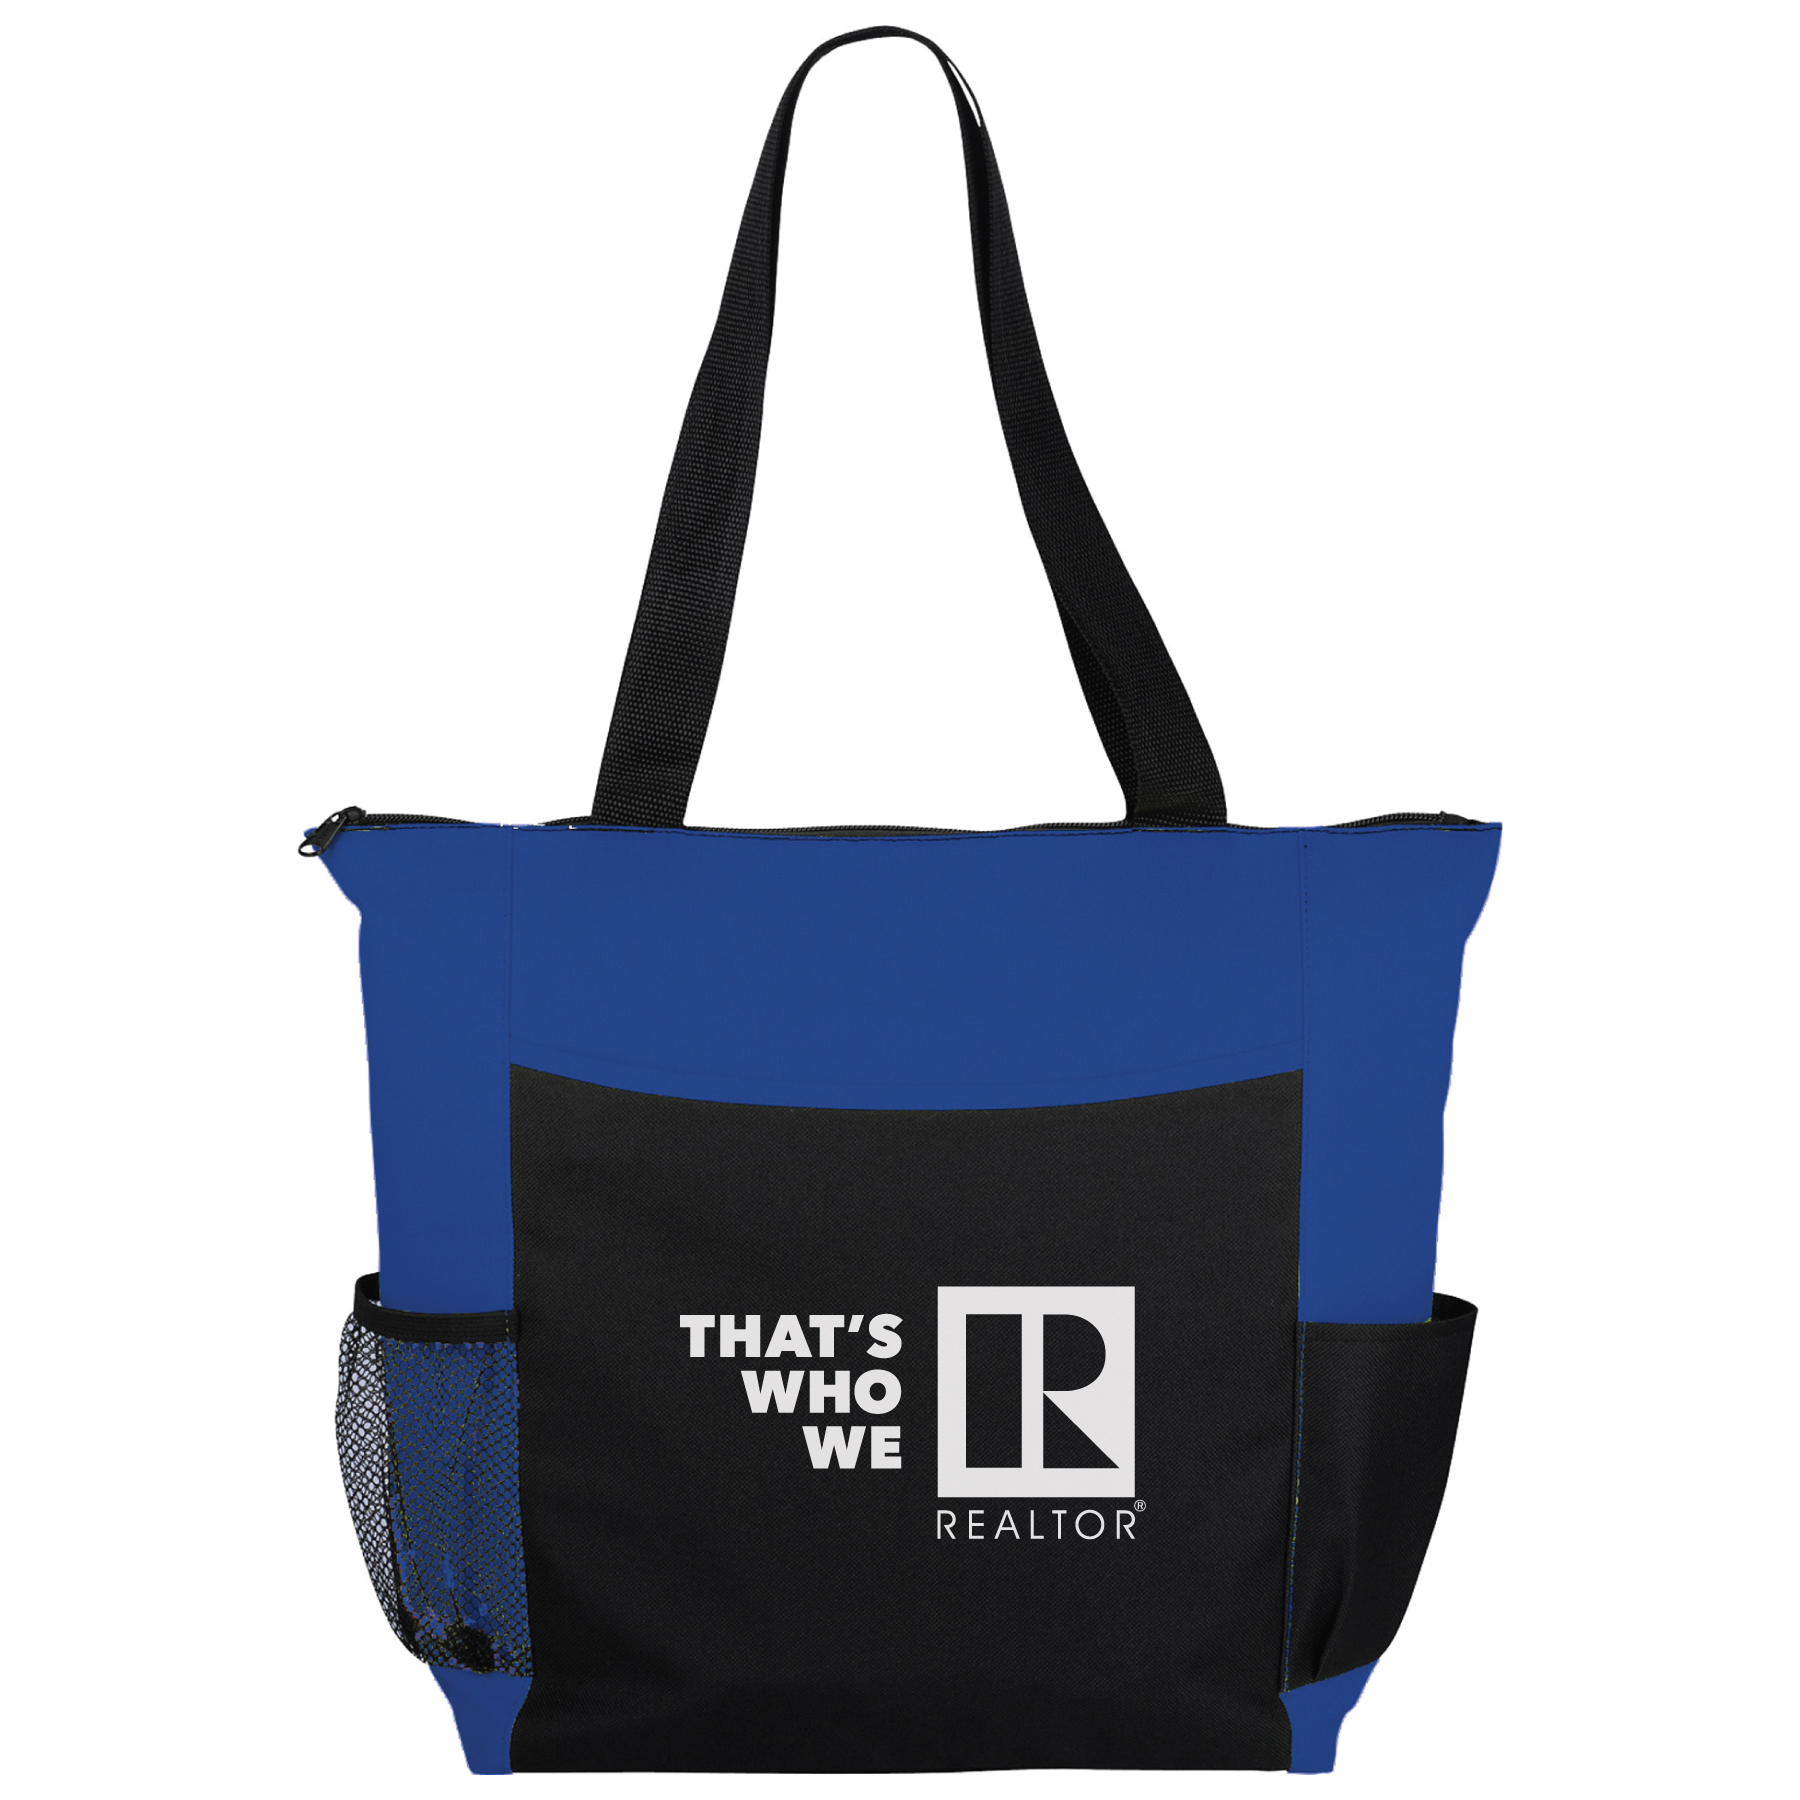 """That's Who We R"" Canvas Bag with Zipper Closure & Bottle Holder twwr,ThatsWhoWeR,That's,TWWR,ThatWho,That'sWho,Twwr,Thats,Whos,We,Ares,RTS4002,Totes,Bags,Straps,Satchels,Slings,"